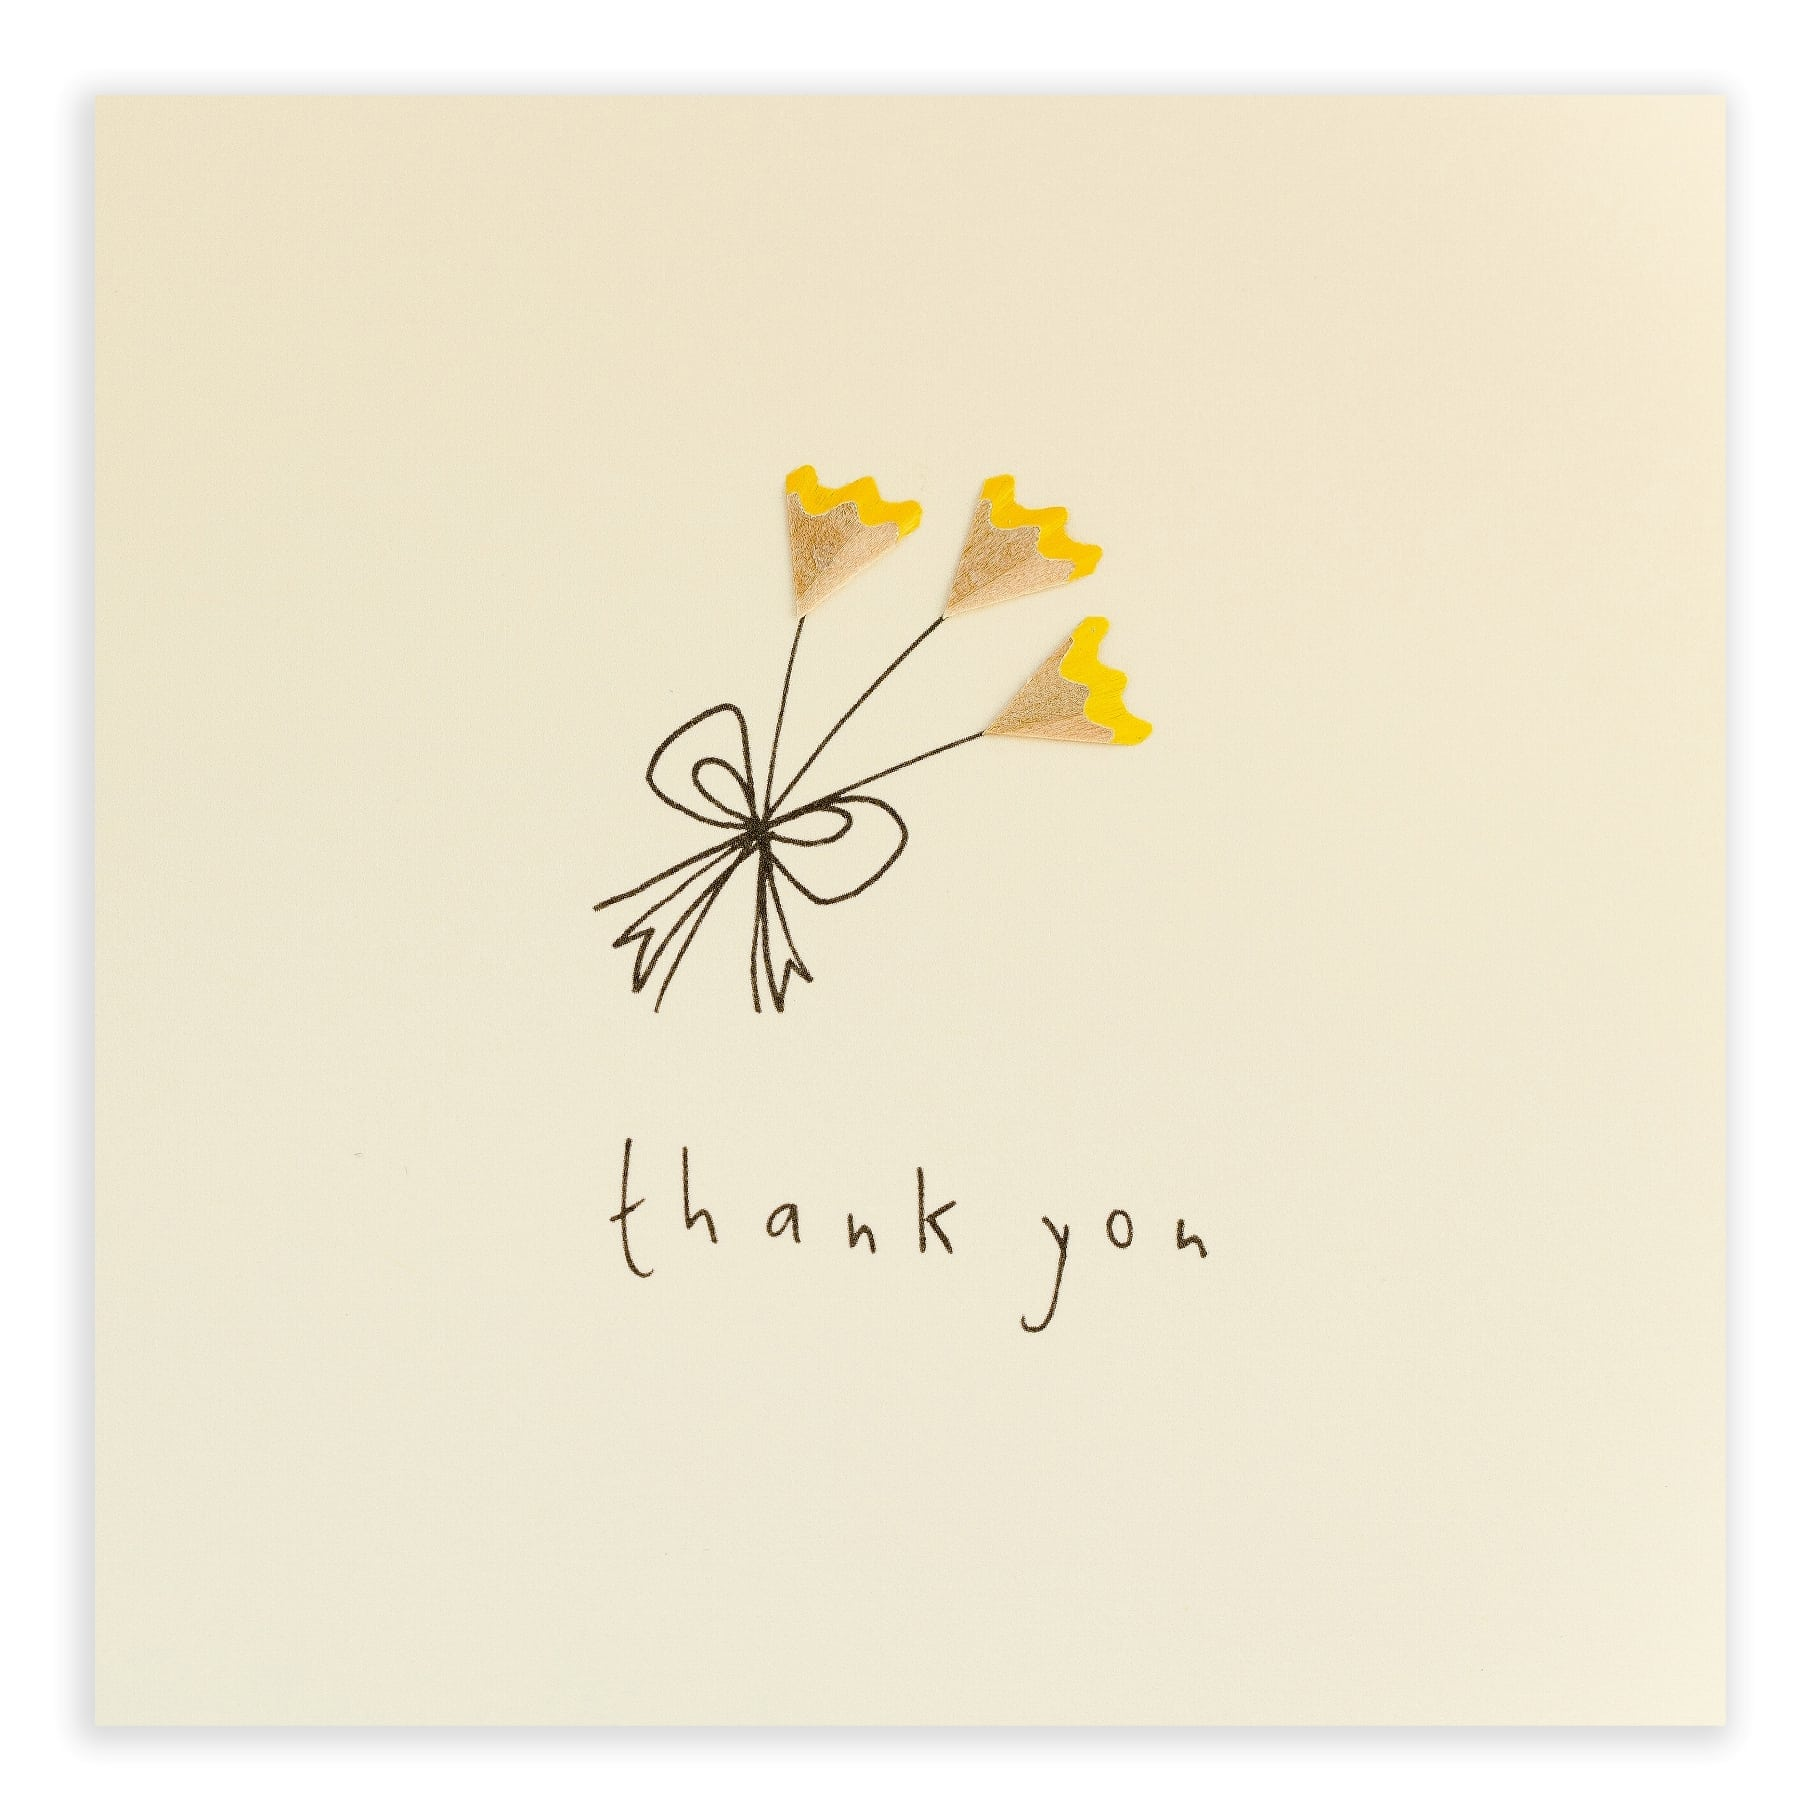 Thank younflowers by ruth jackson